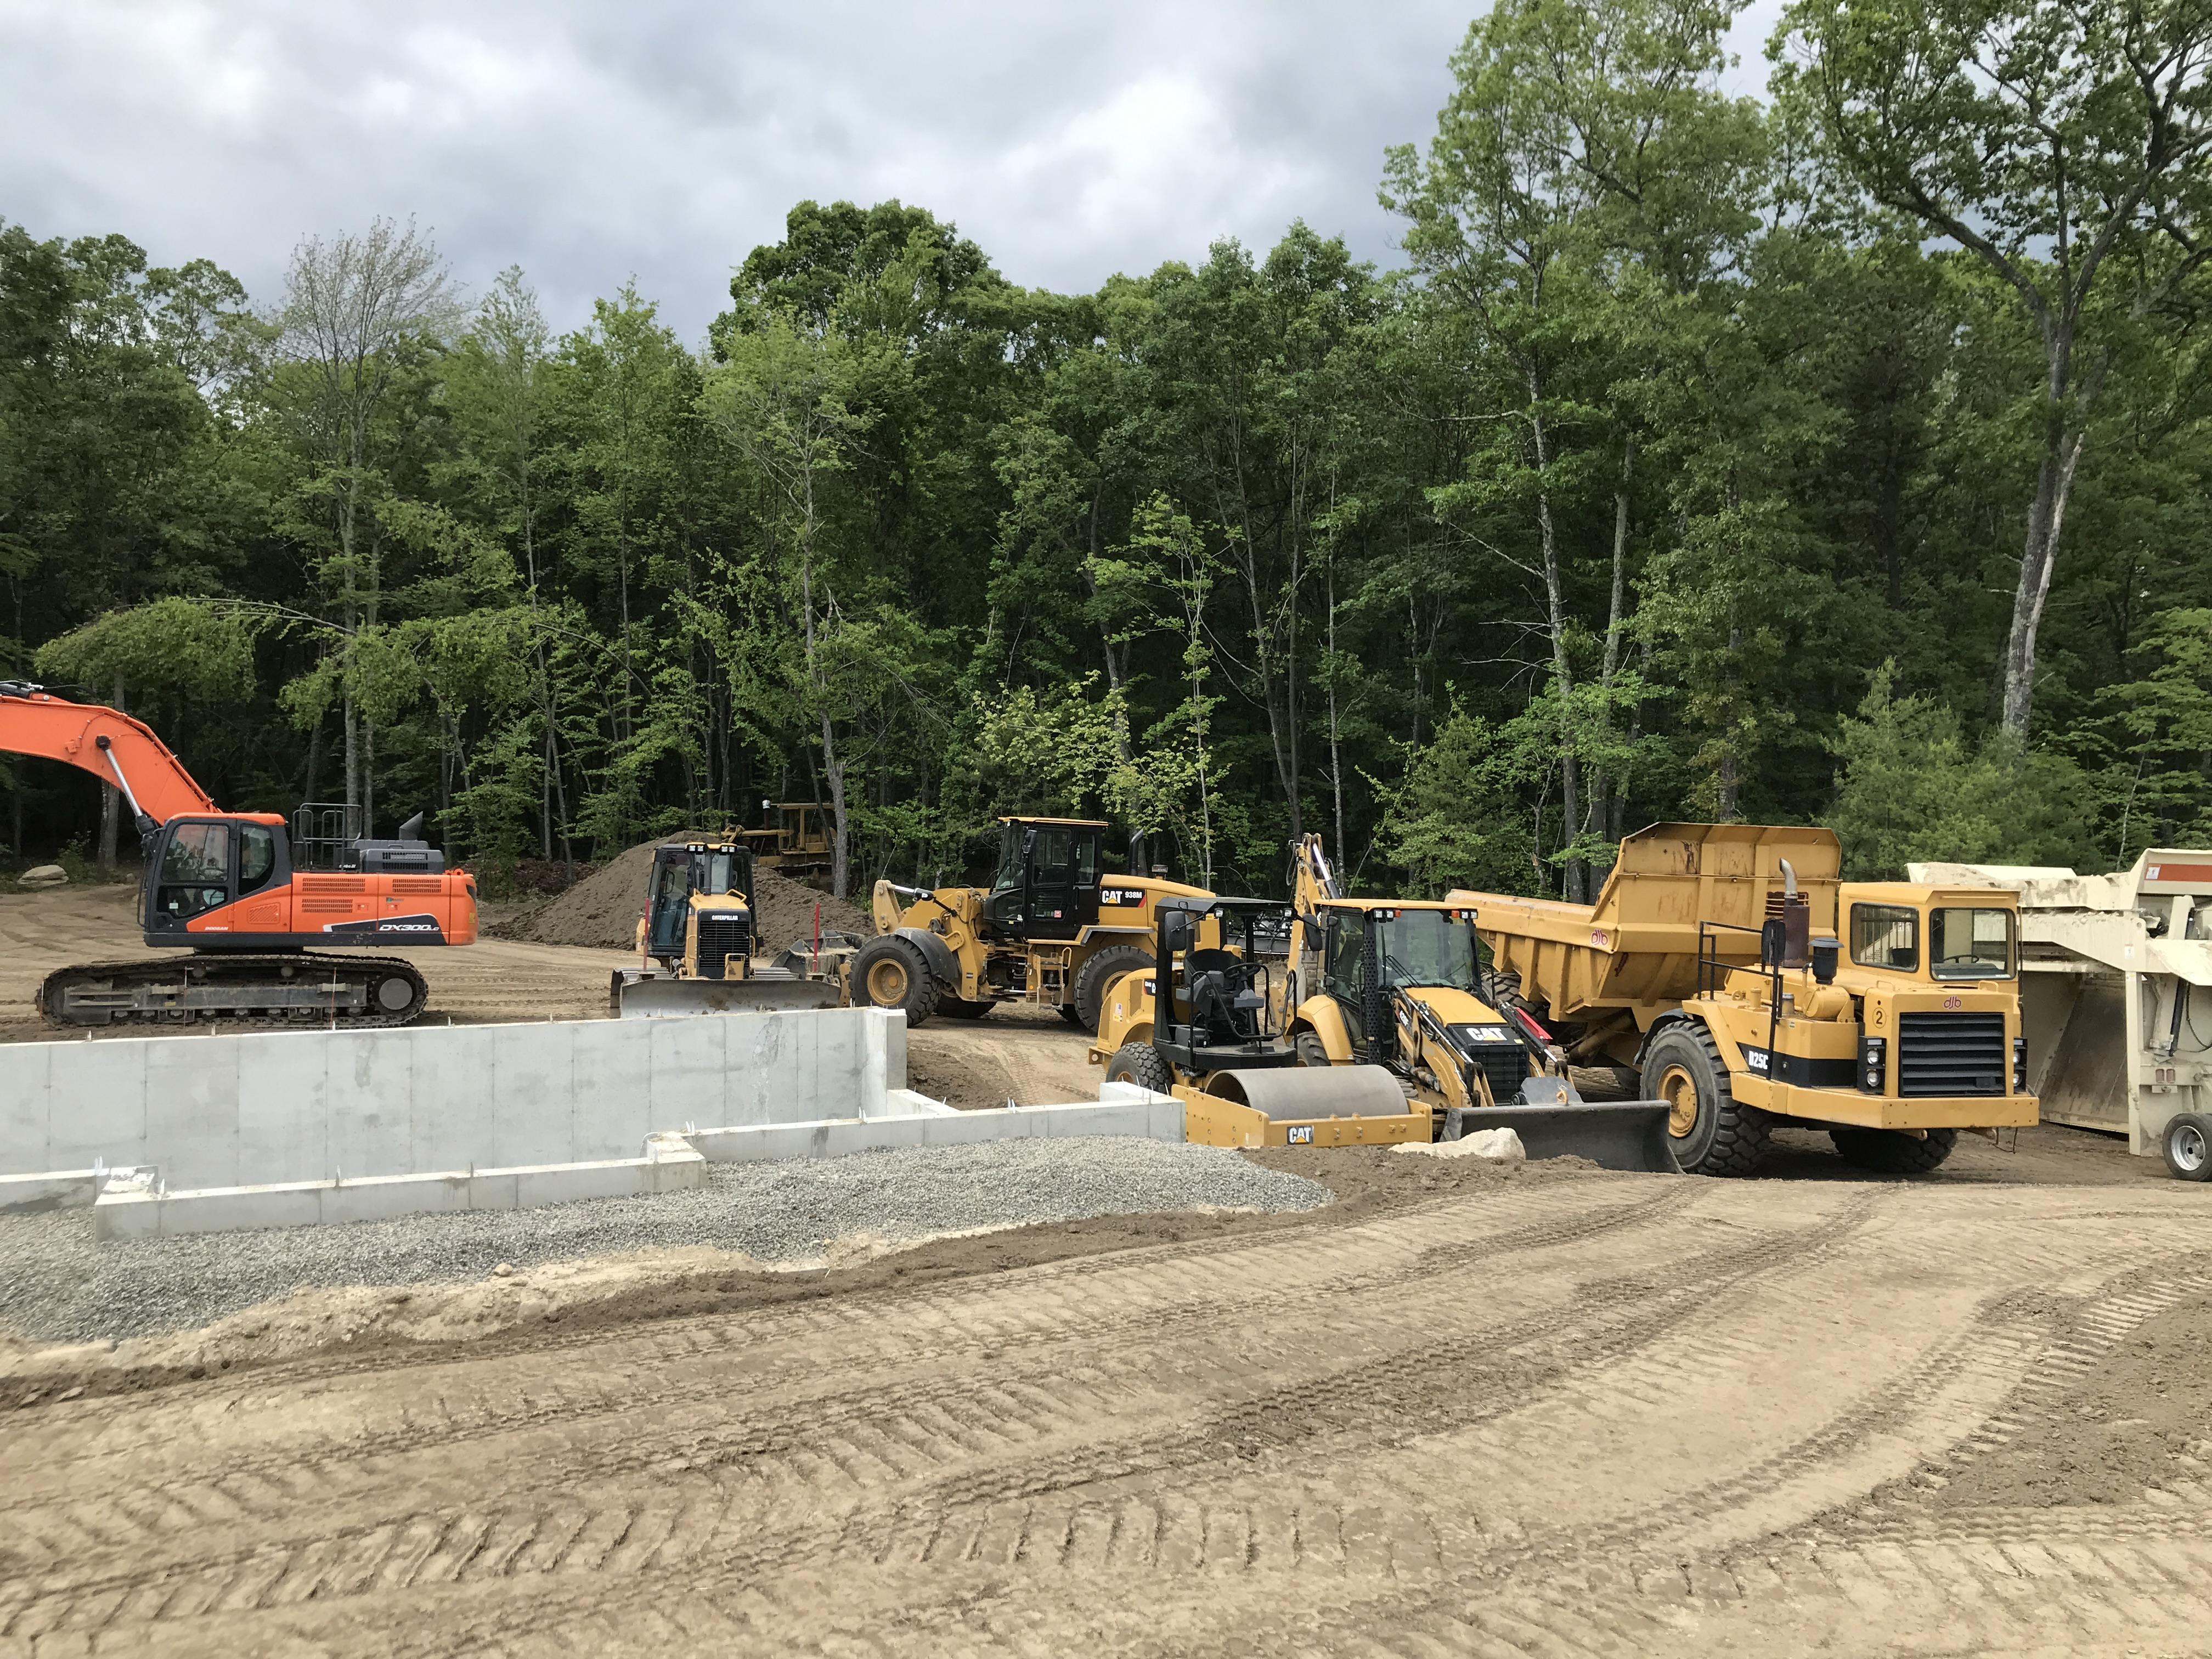 Six construction equipment trucks working on a construction site